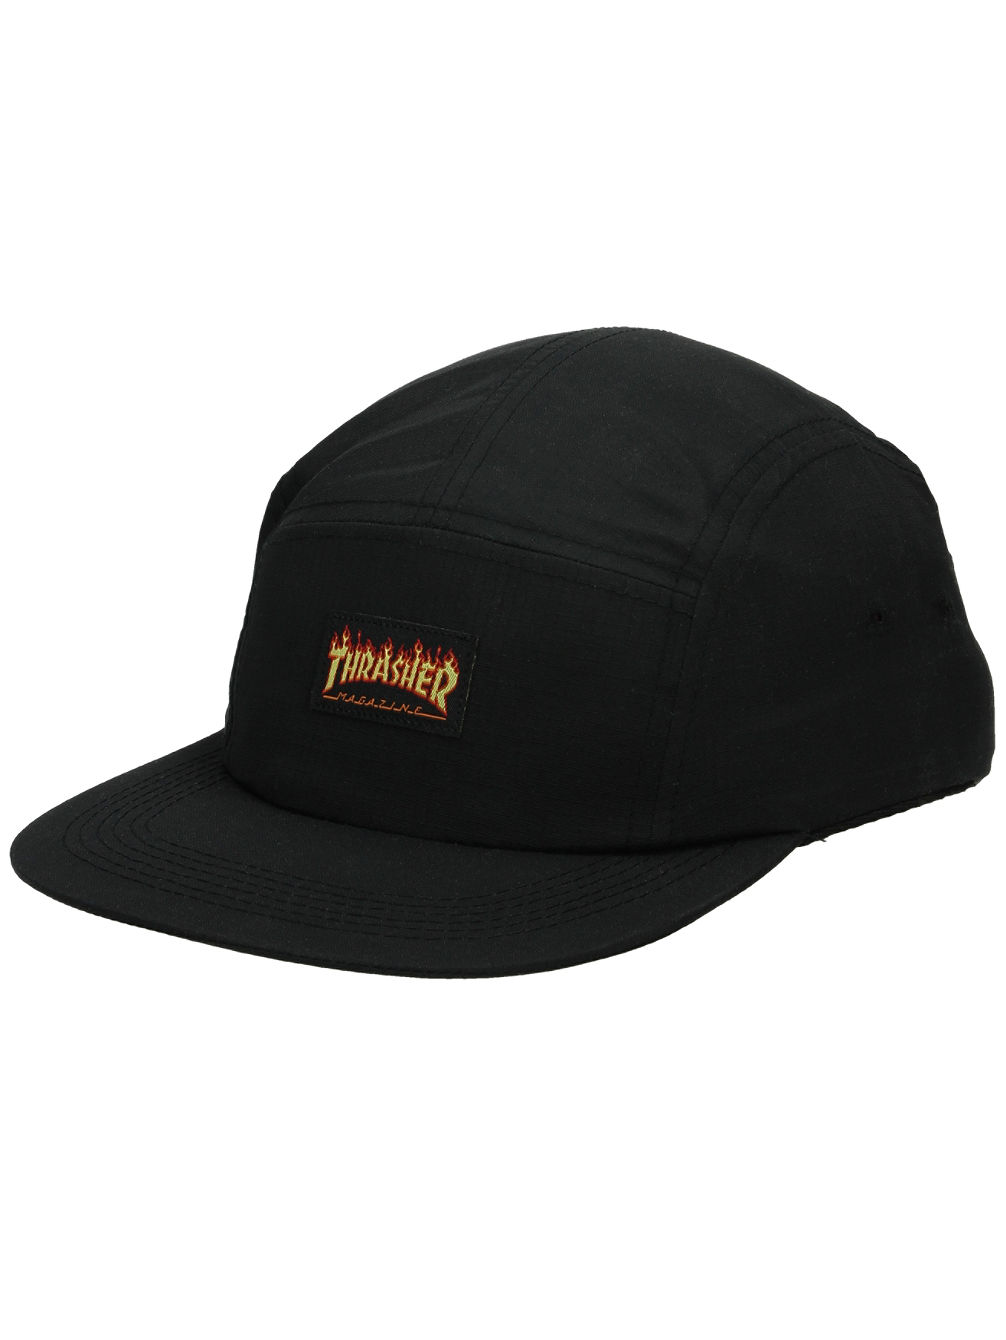 4e1d71ee2fa Buy Thrasher Flame Logo 5 Panel Cap online at Blue Tomato